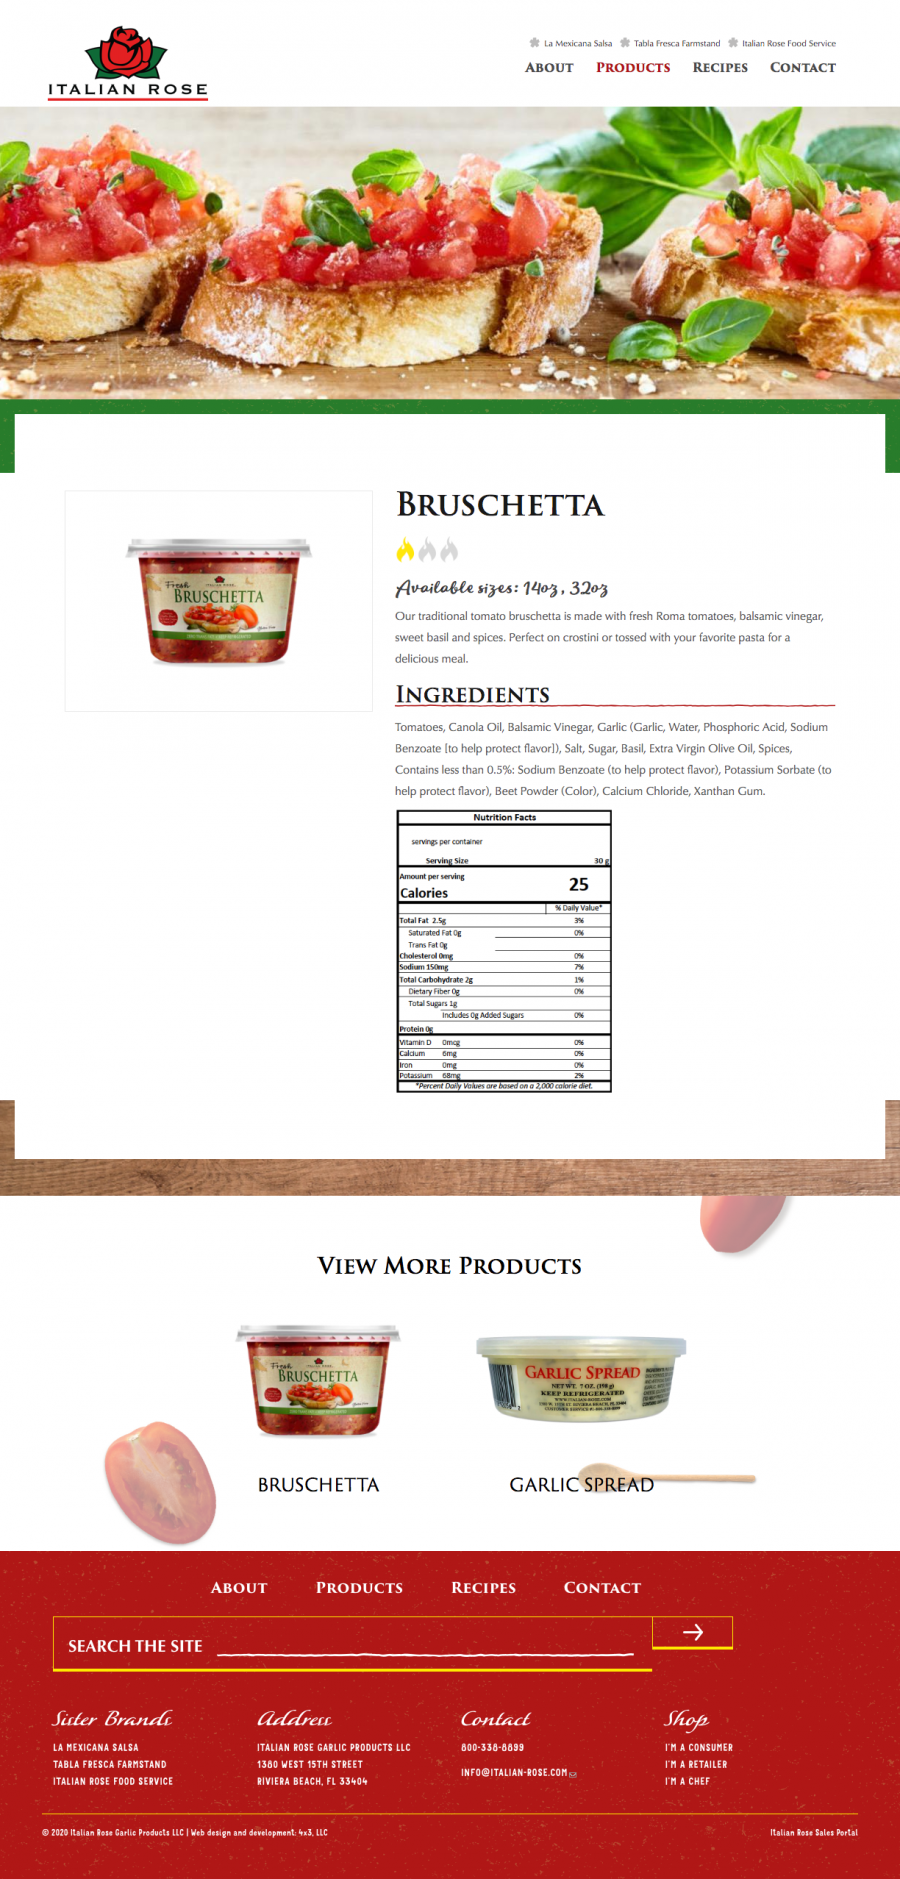 Italian Rose product page